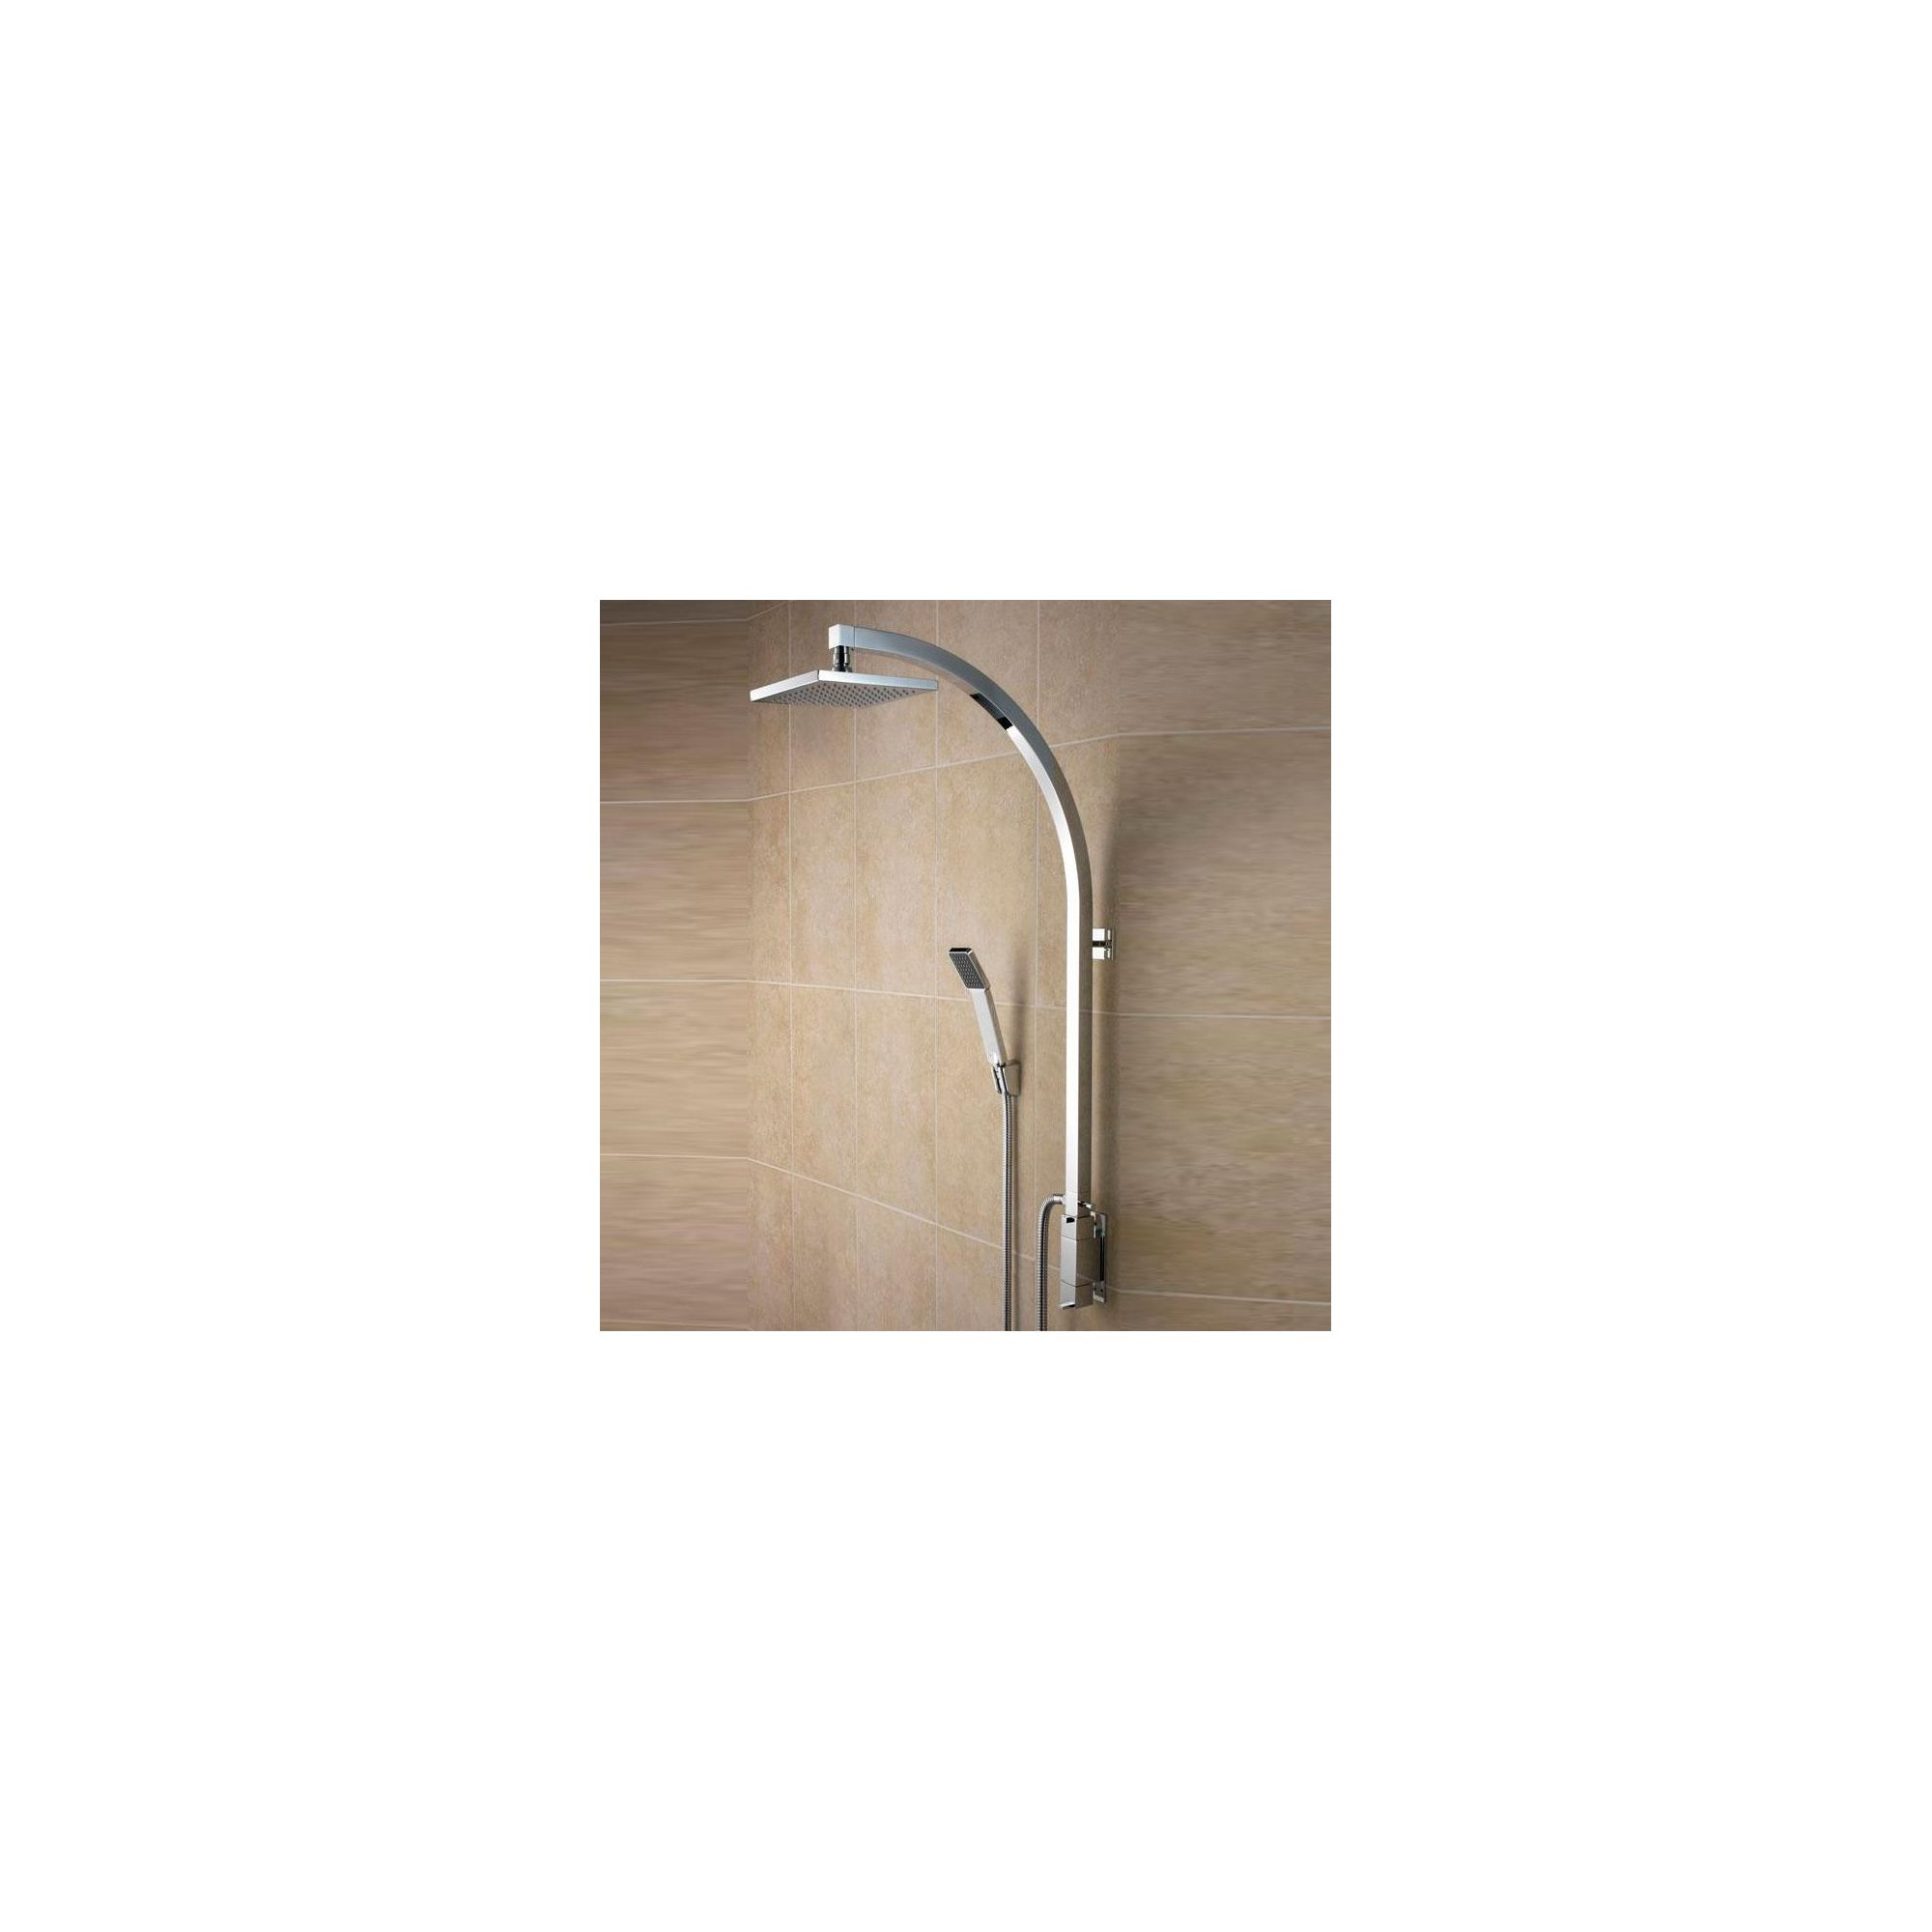 Bristan Qube Inline Vertical Shower Pole with Integral Diverter to Handset Chrome at Tesco Direct